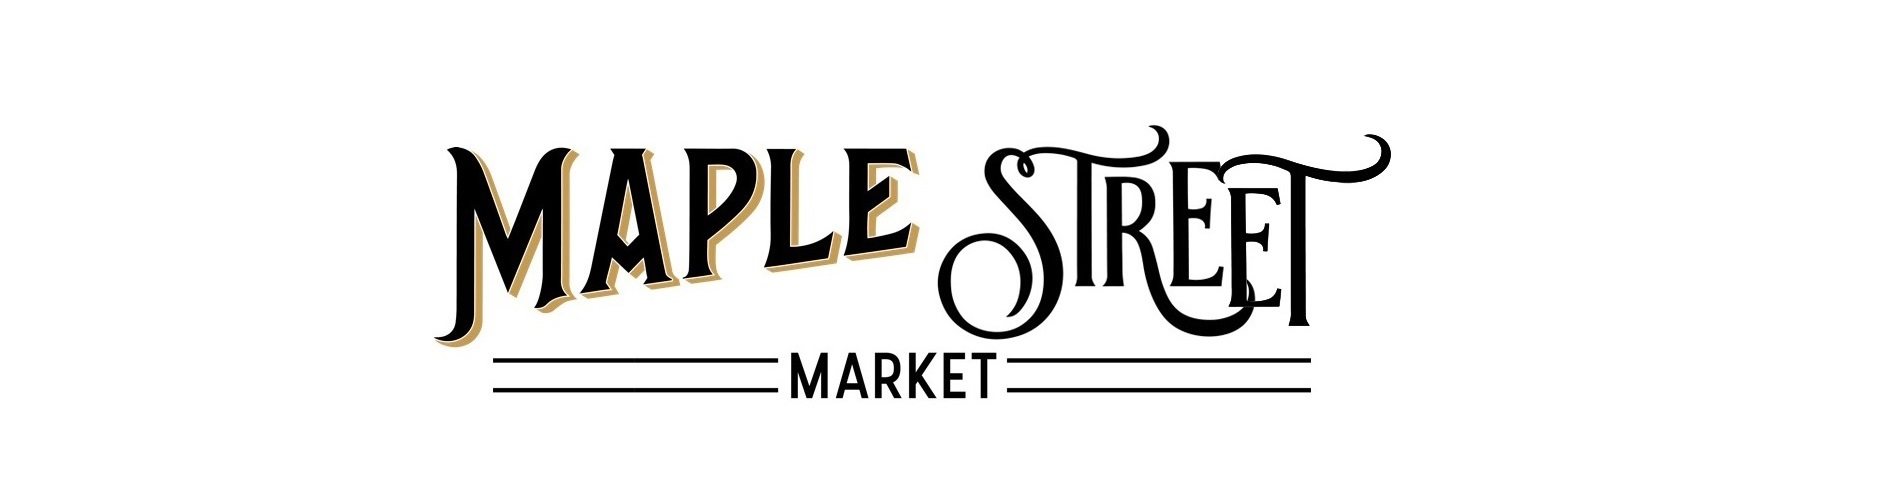 Maple Street Market